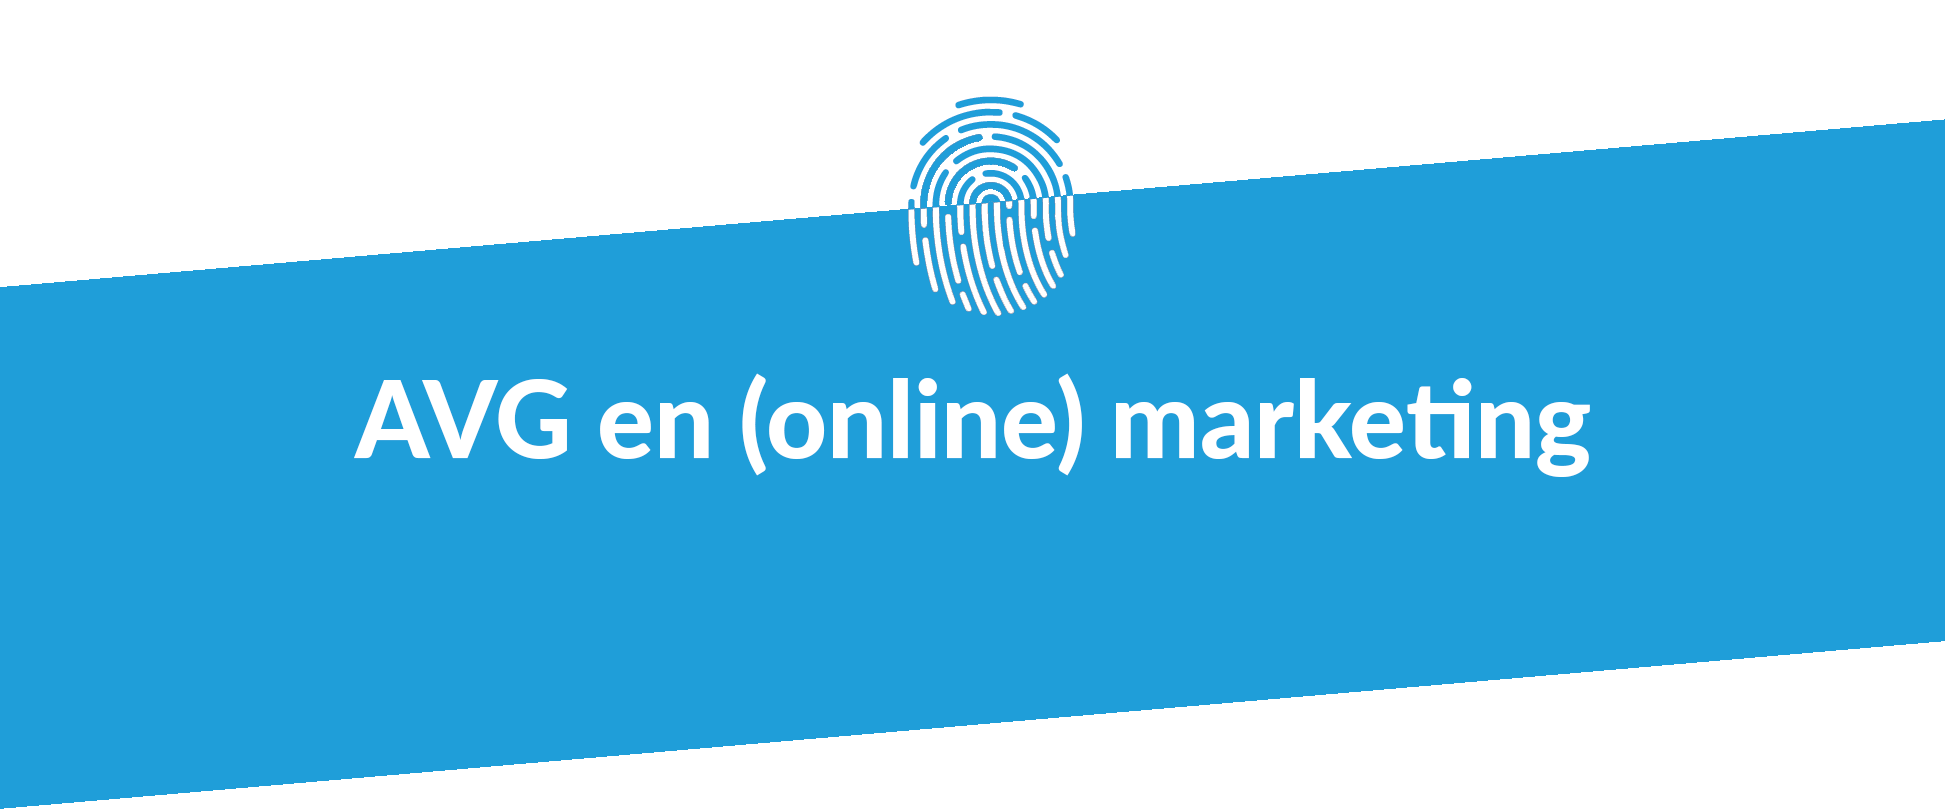 avg-en-online-marketing